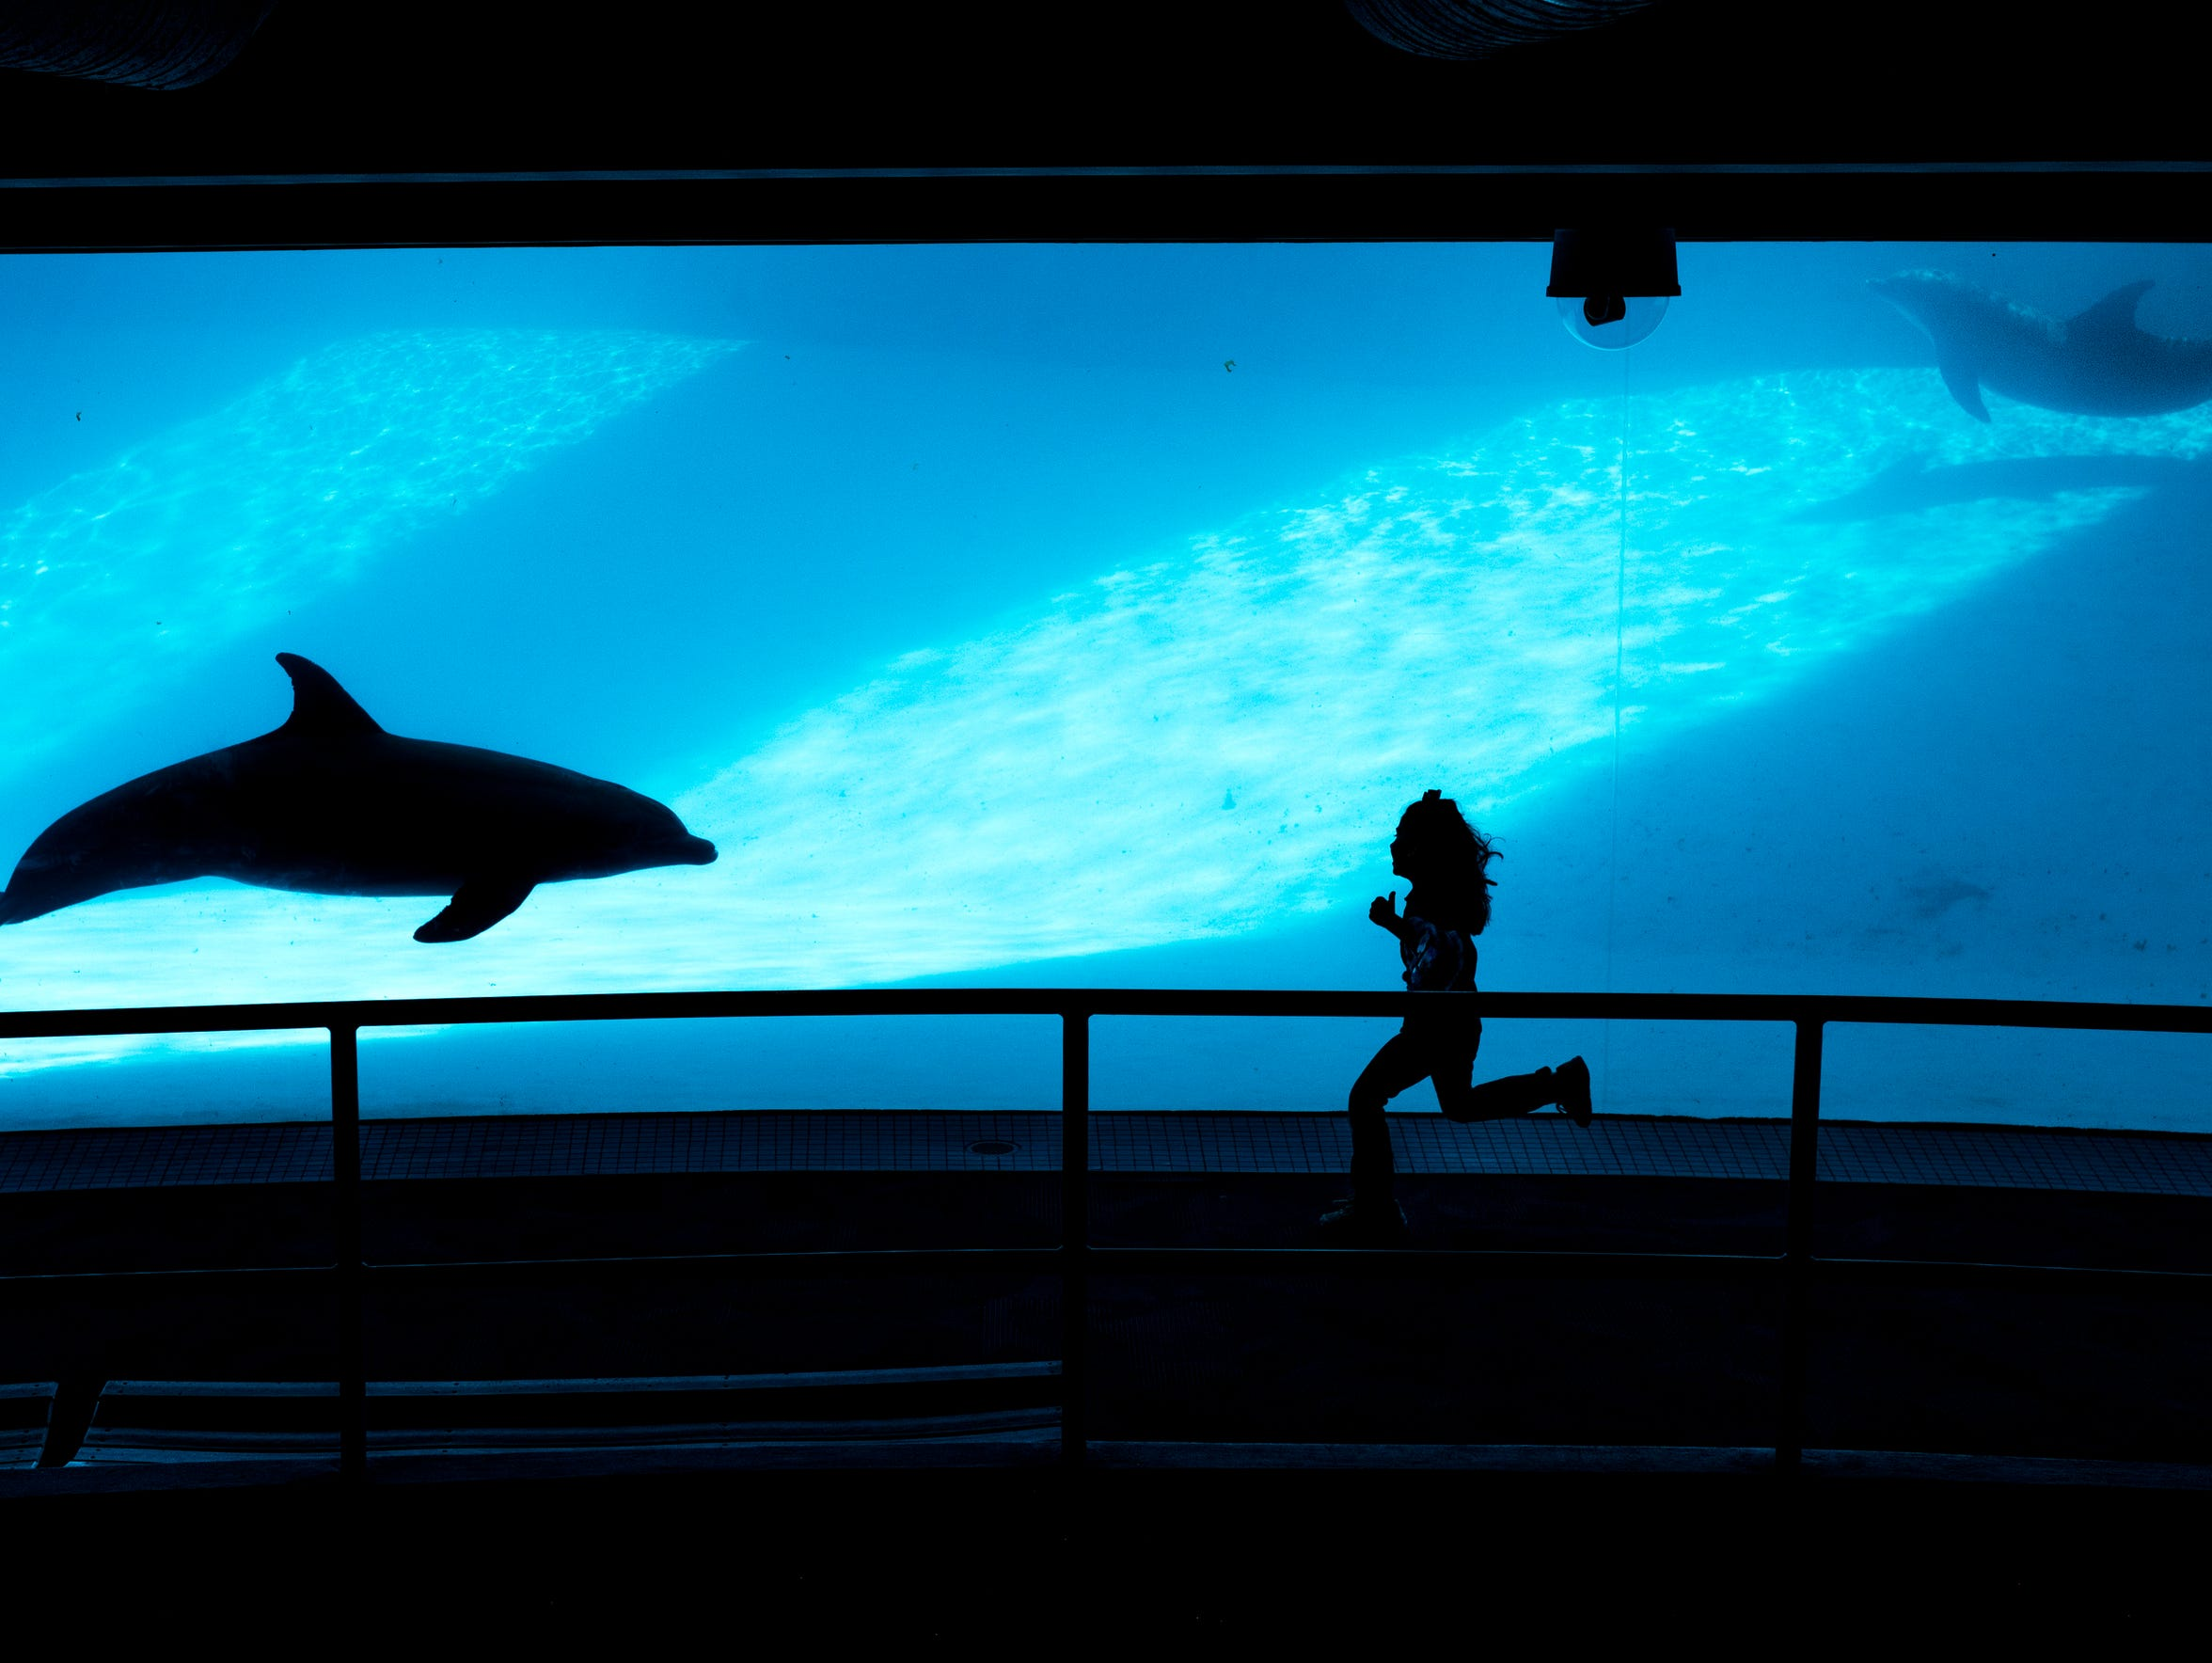 A young girl runs toward the dolphins in a underwater